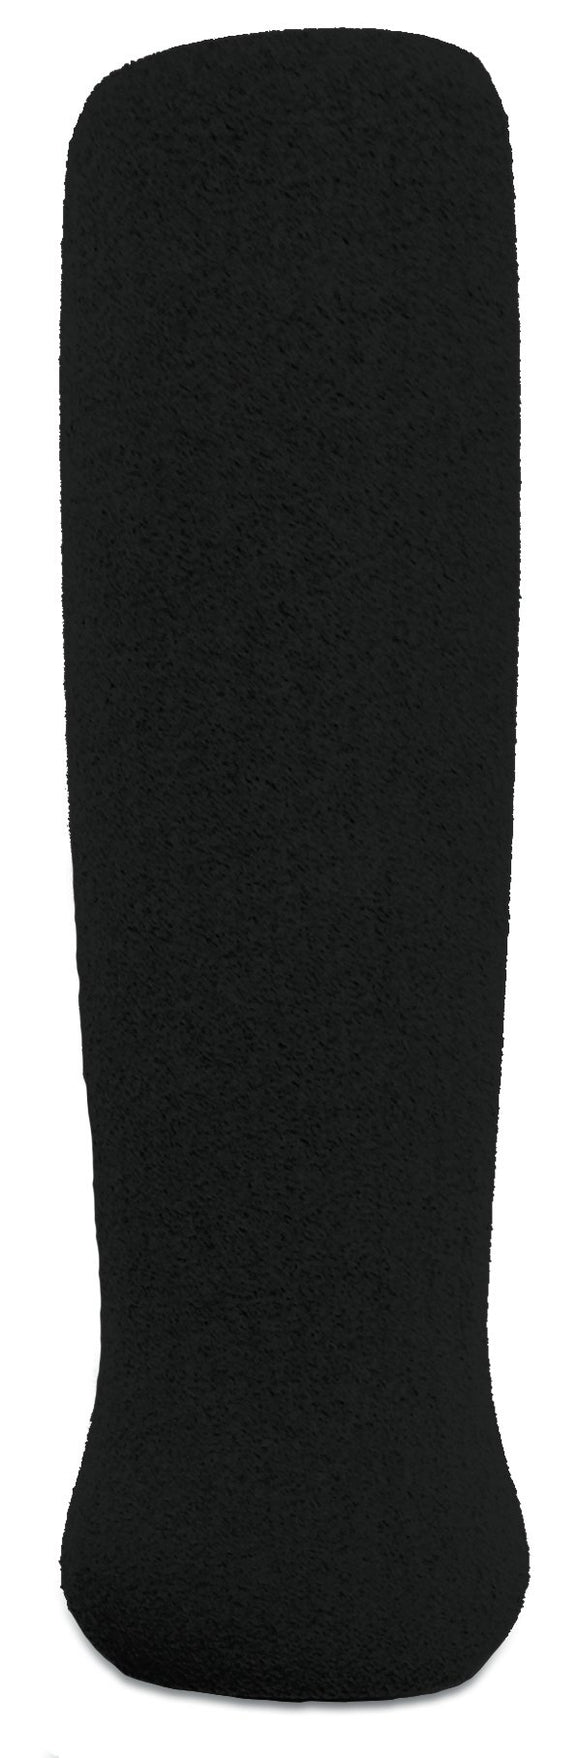 W1340-FHBL Foam Handle for Offset Cane - Black